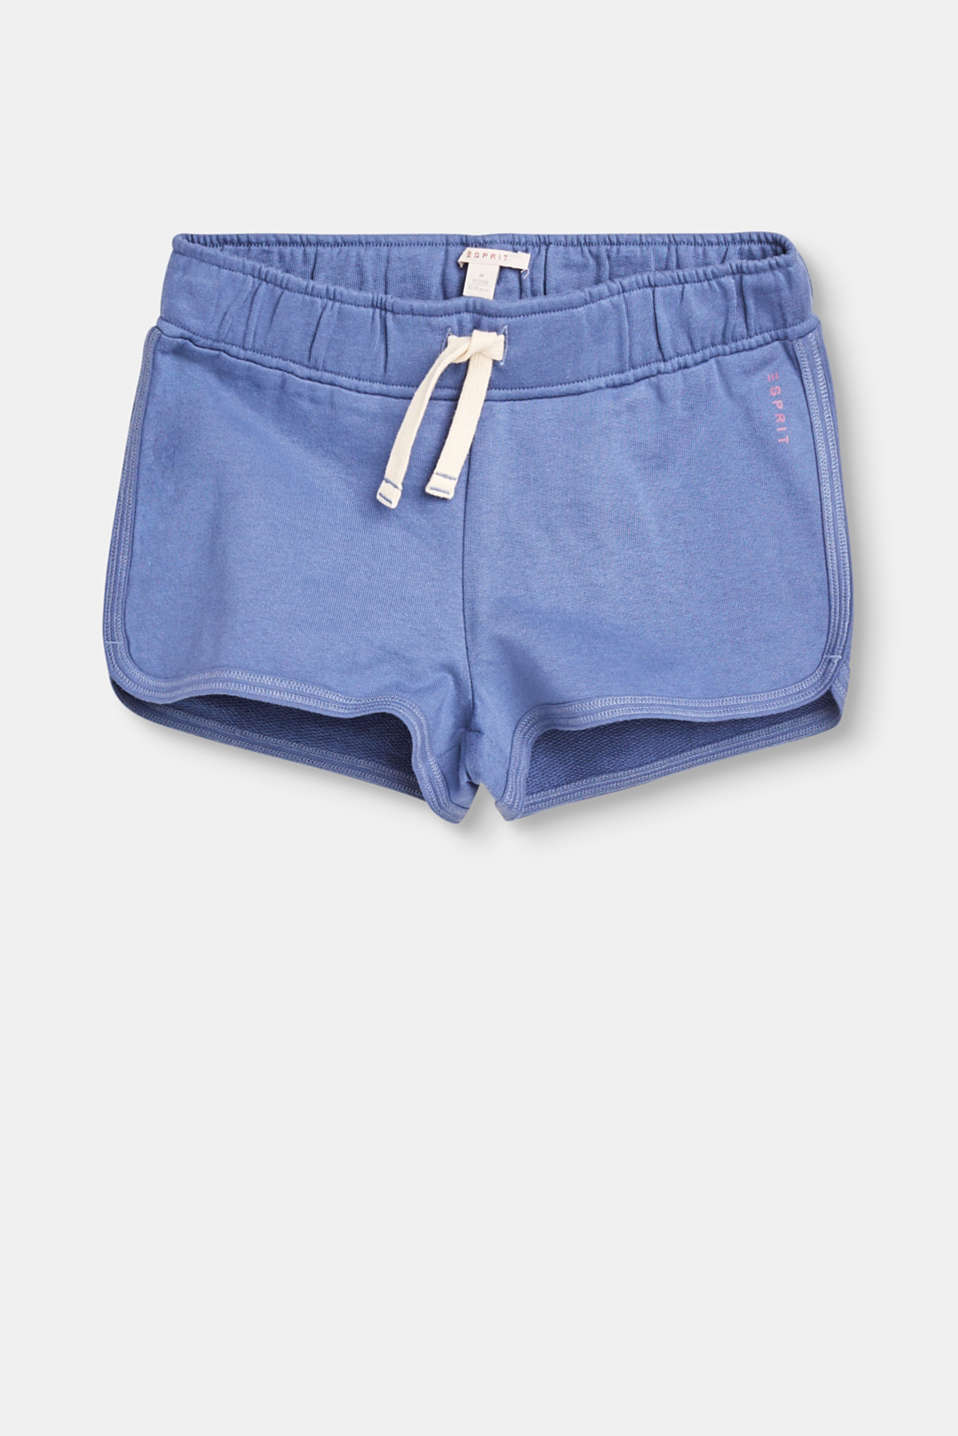 Esprit - Basic jogging shorts in pure cotton